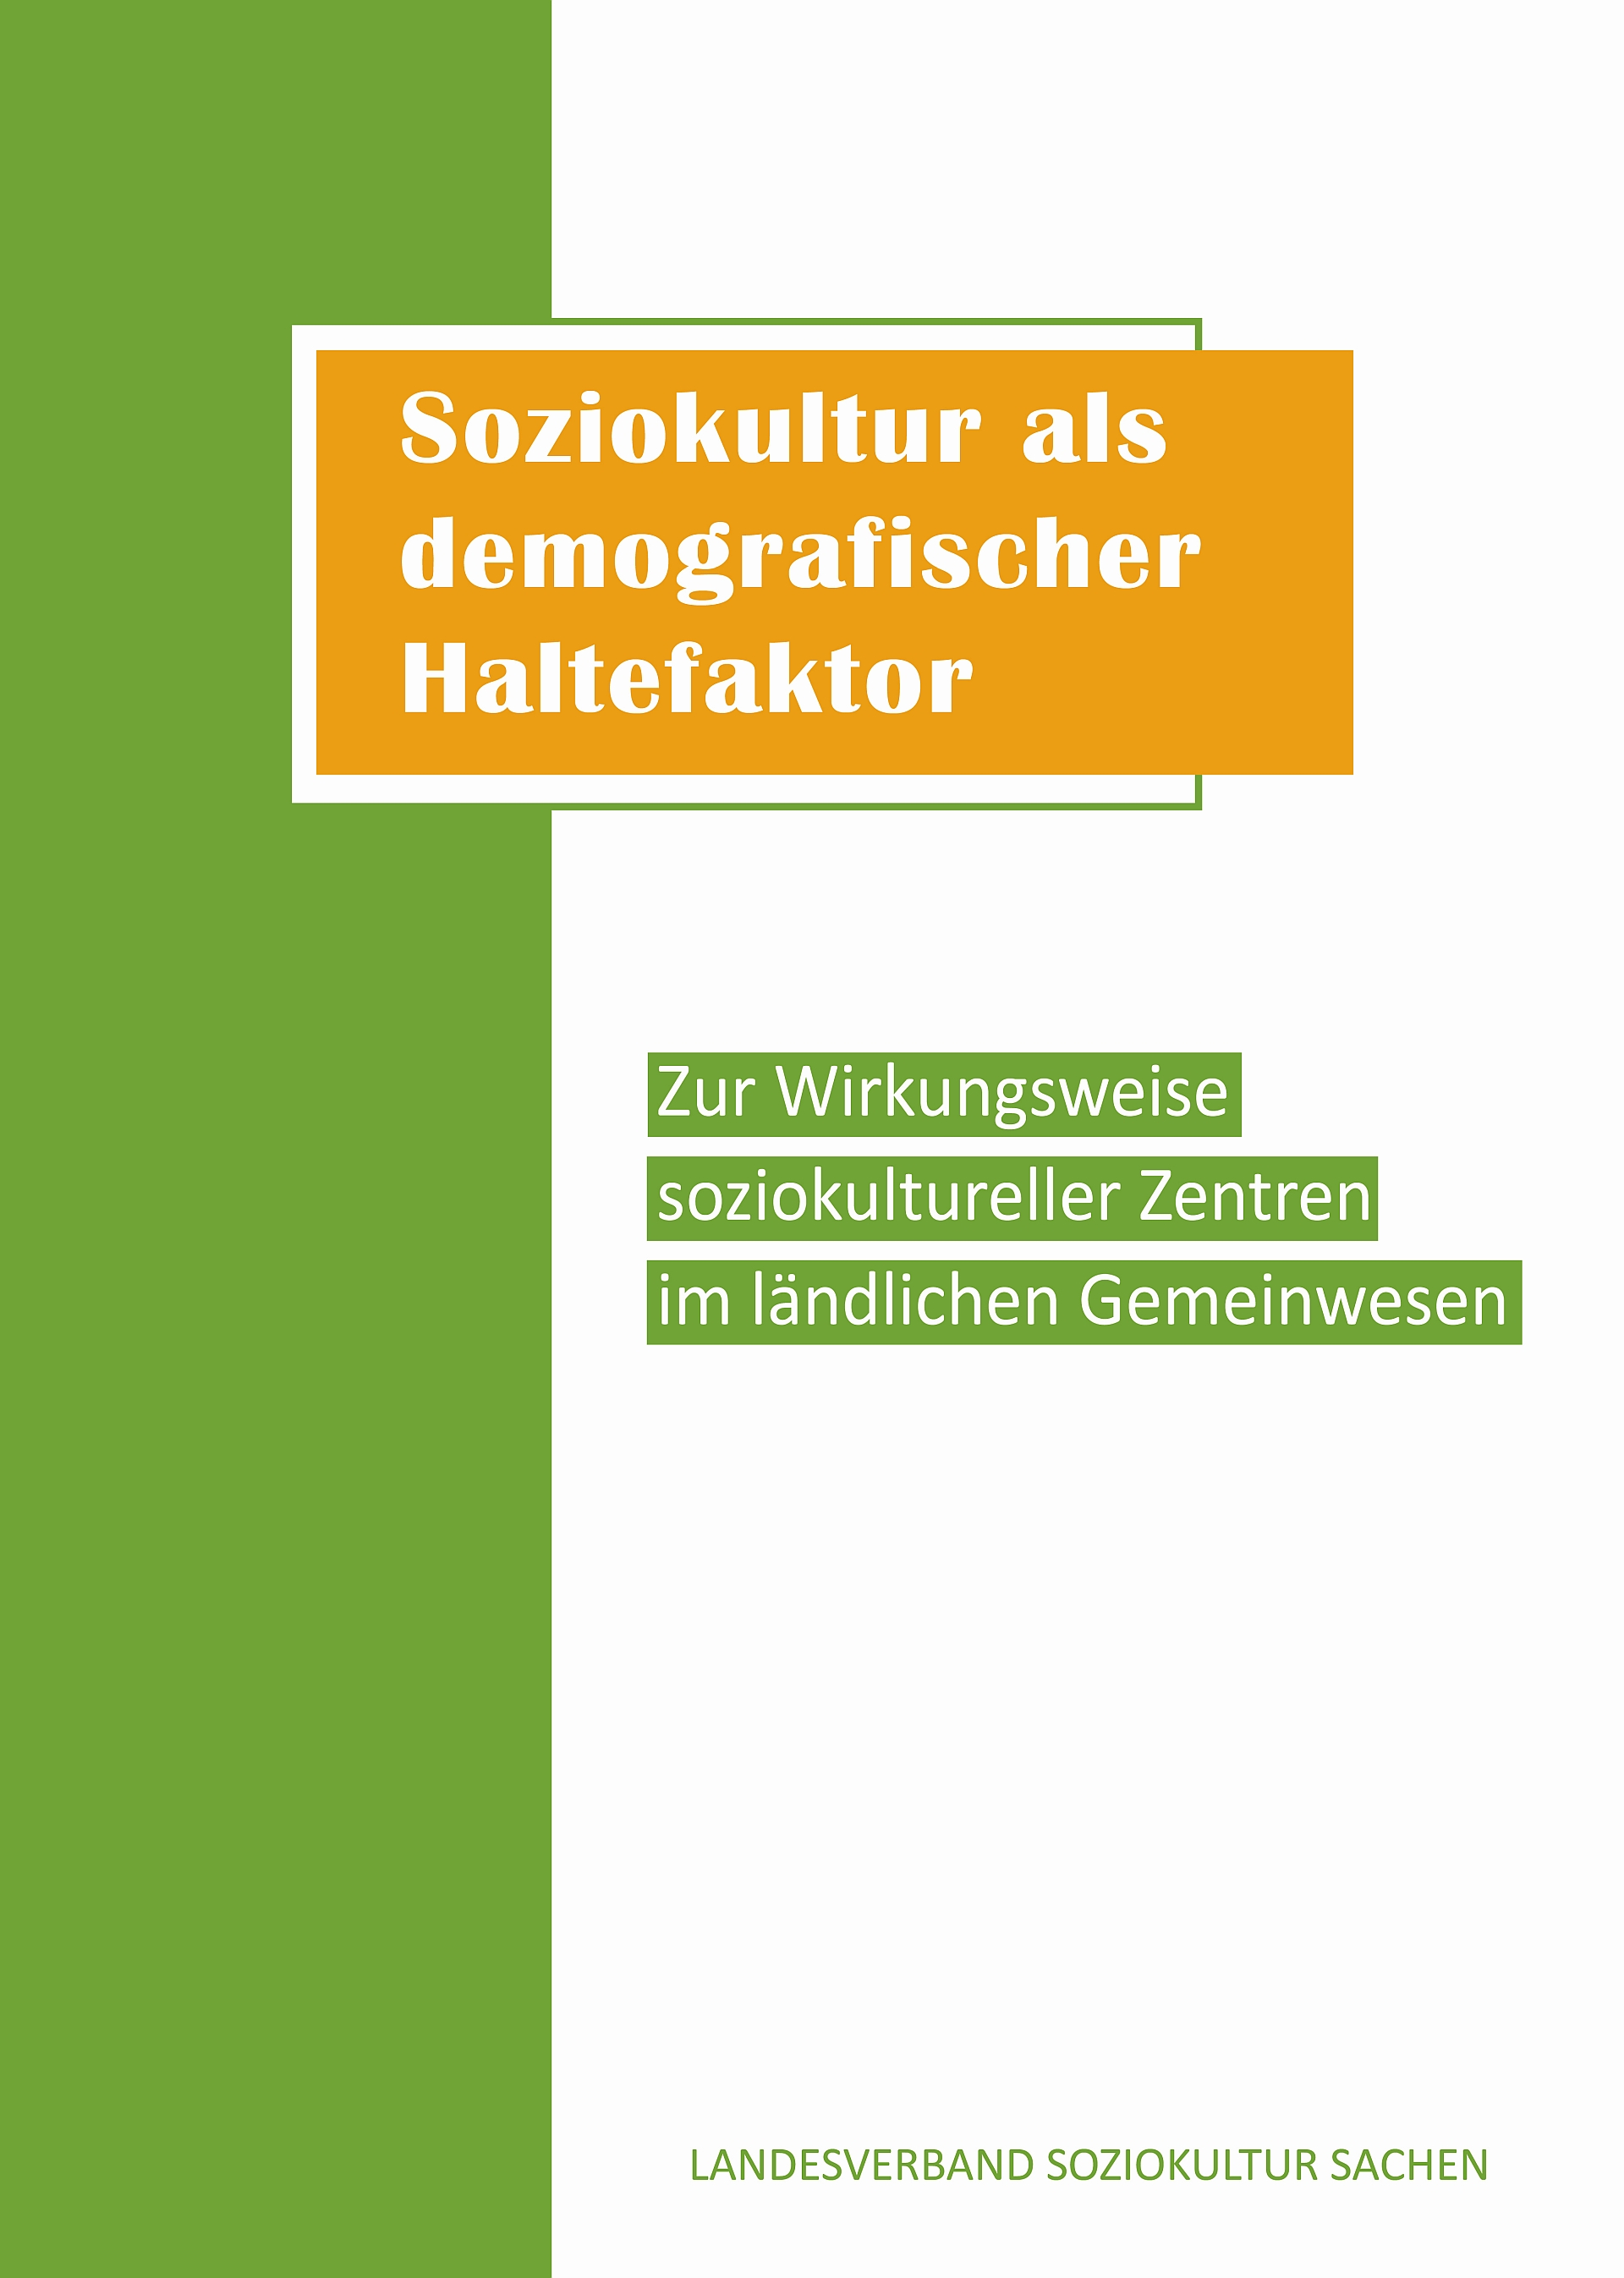 Publikation: Gutachten Soziokultur (Grafik/ Layout & Textsatz: Kathrin Weigel)